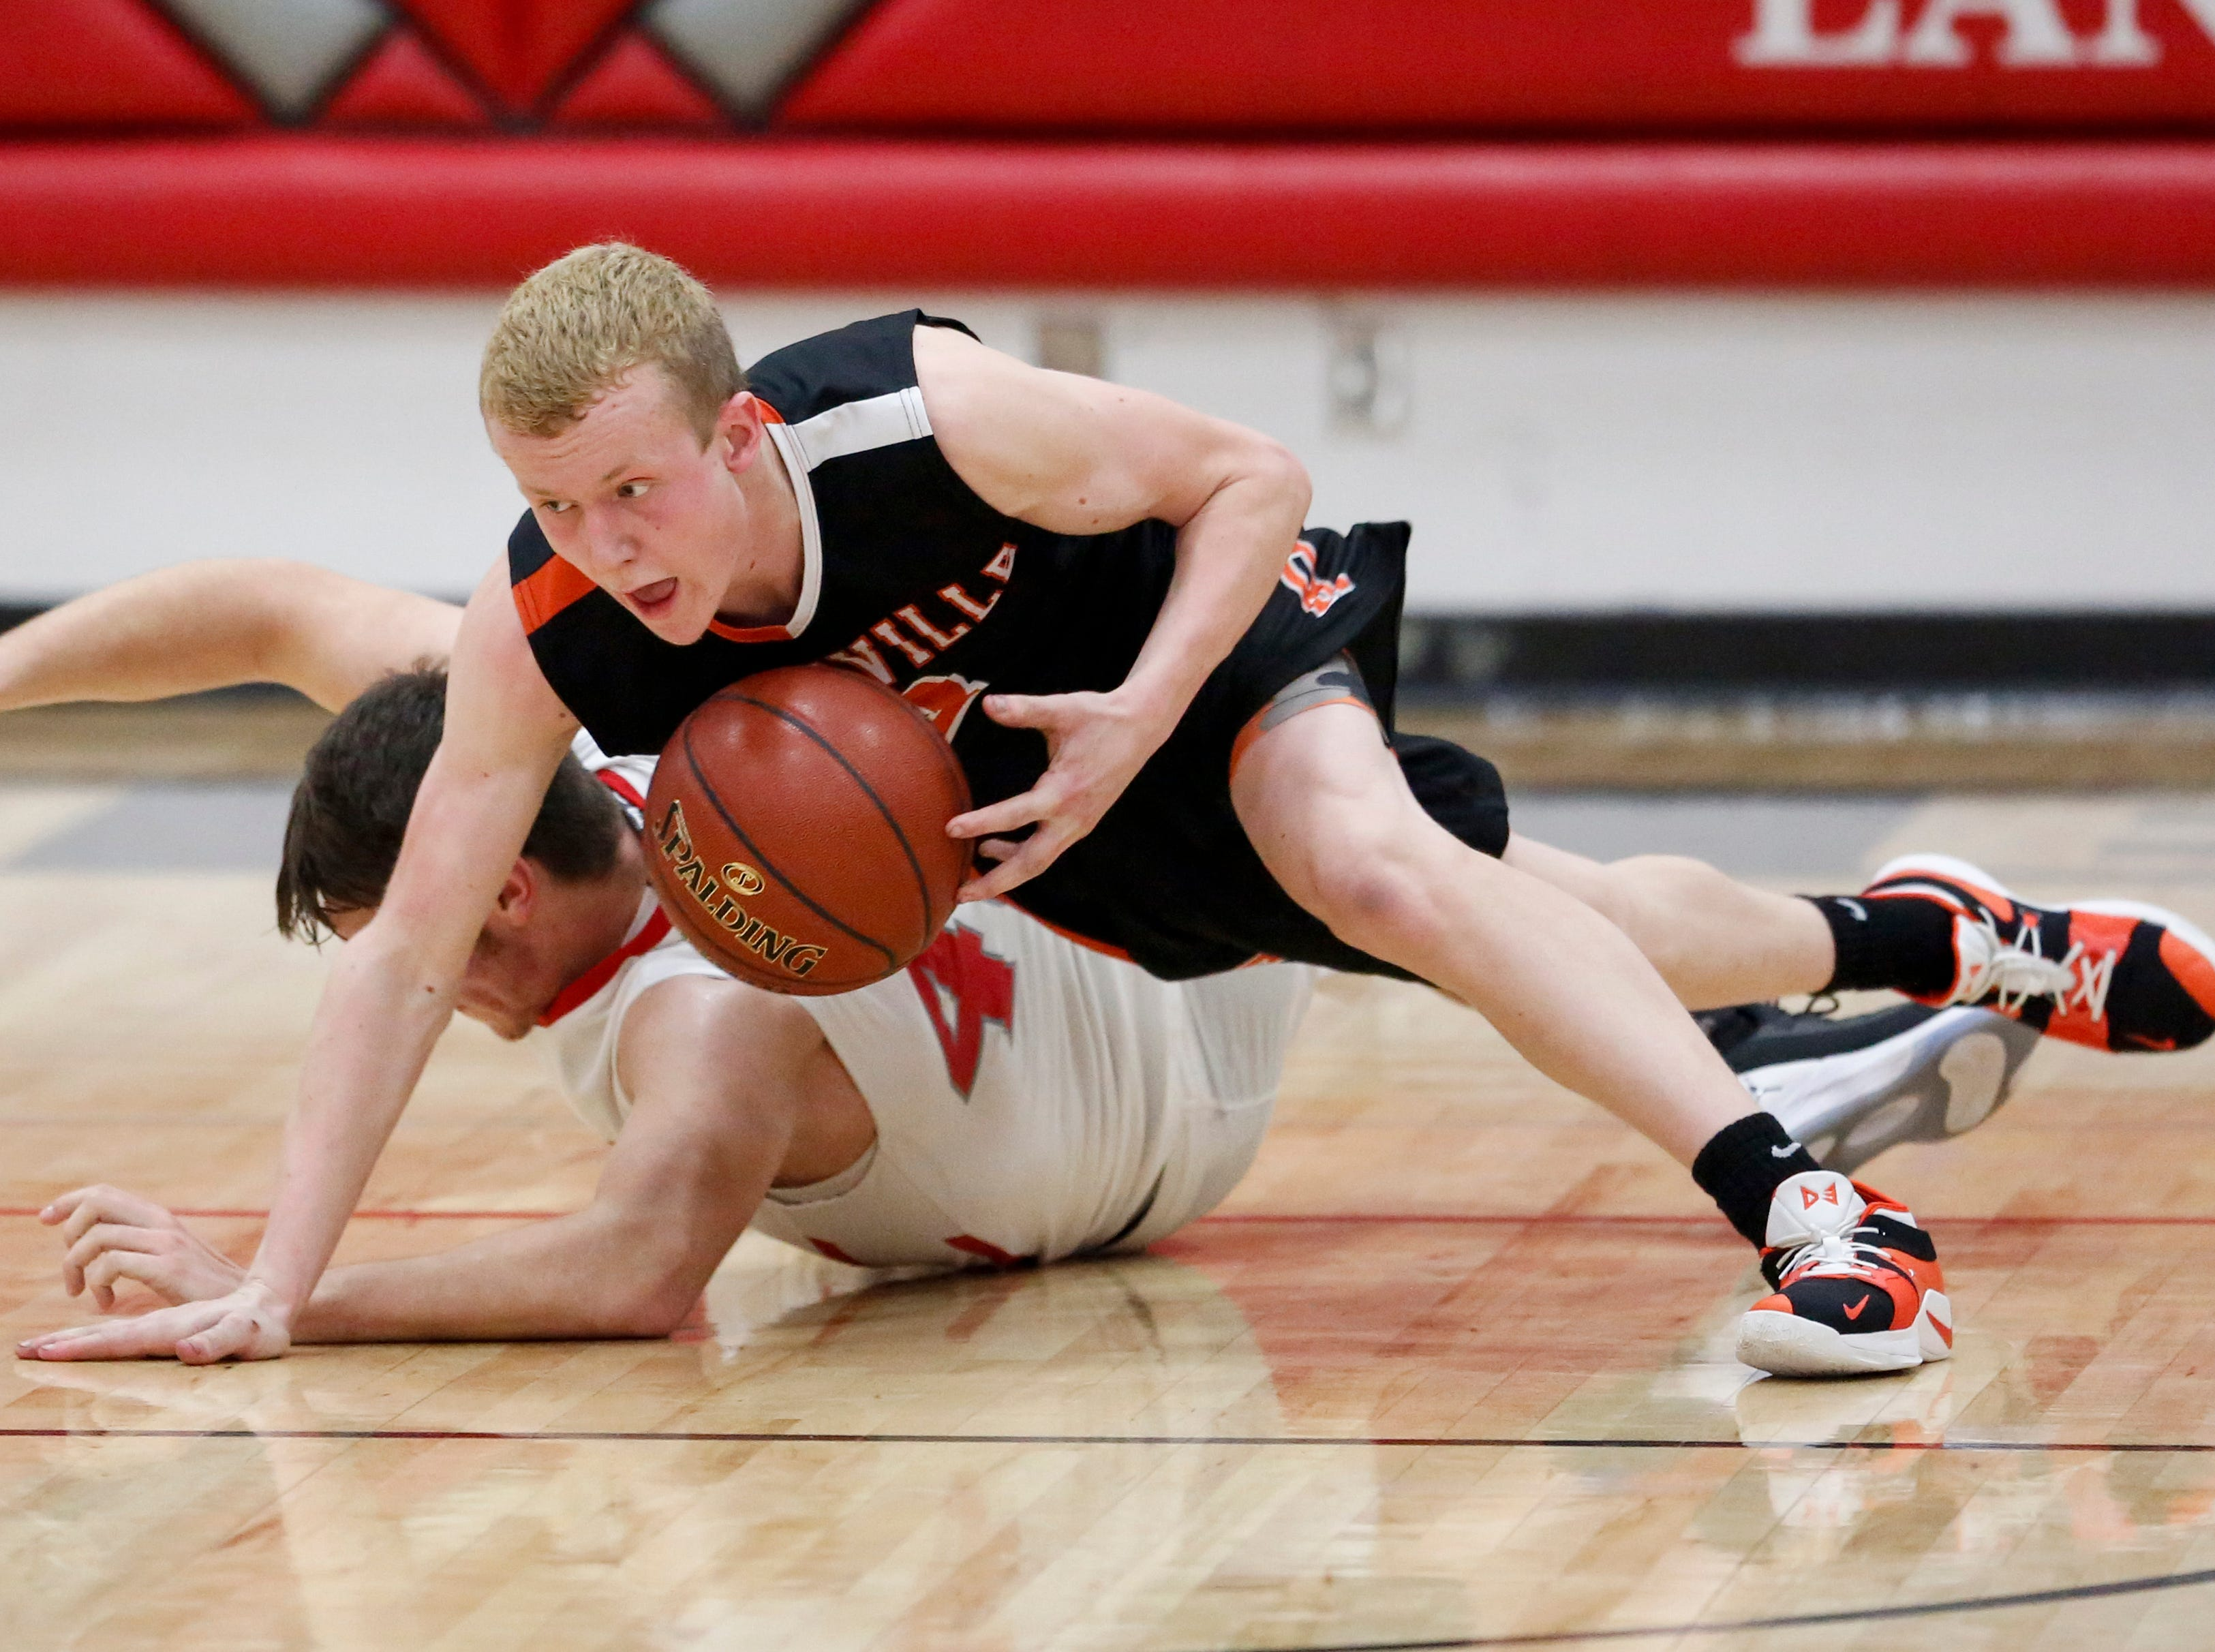 Reedsville's Brody Kiekhaefer steals a loose ball from Manitowoc Lutheran's Korey Garceau at Manitowoc Lutheran High School Thursday, December 20, 2018, in Manitowoc, Wis. Joshua Clark/USA TODAY NETWORK-Wisconsin